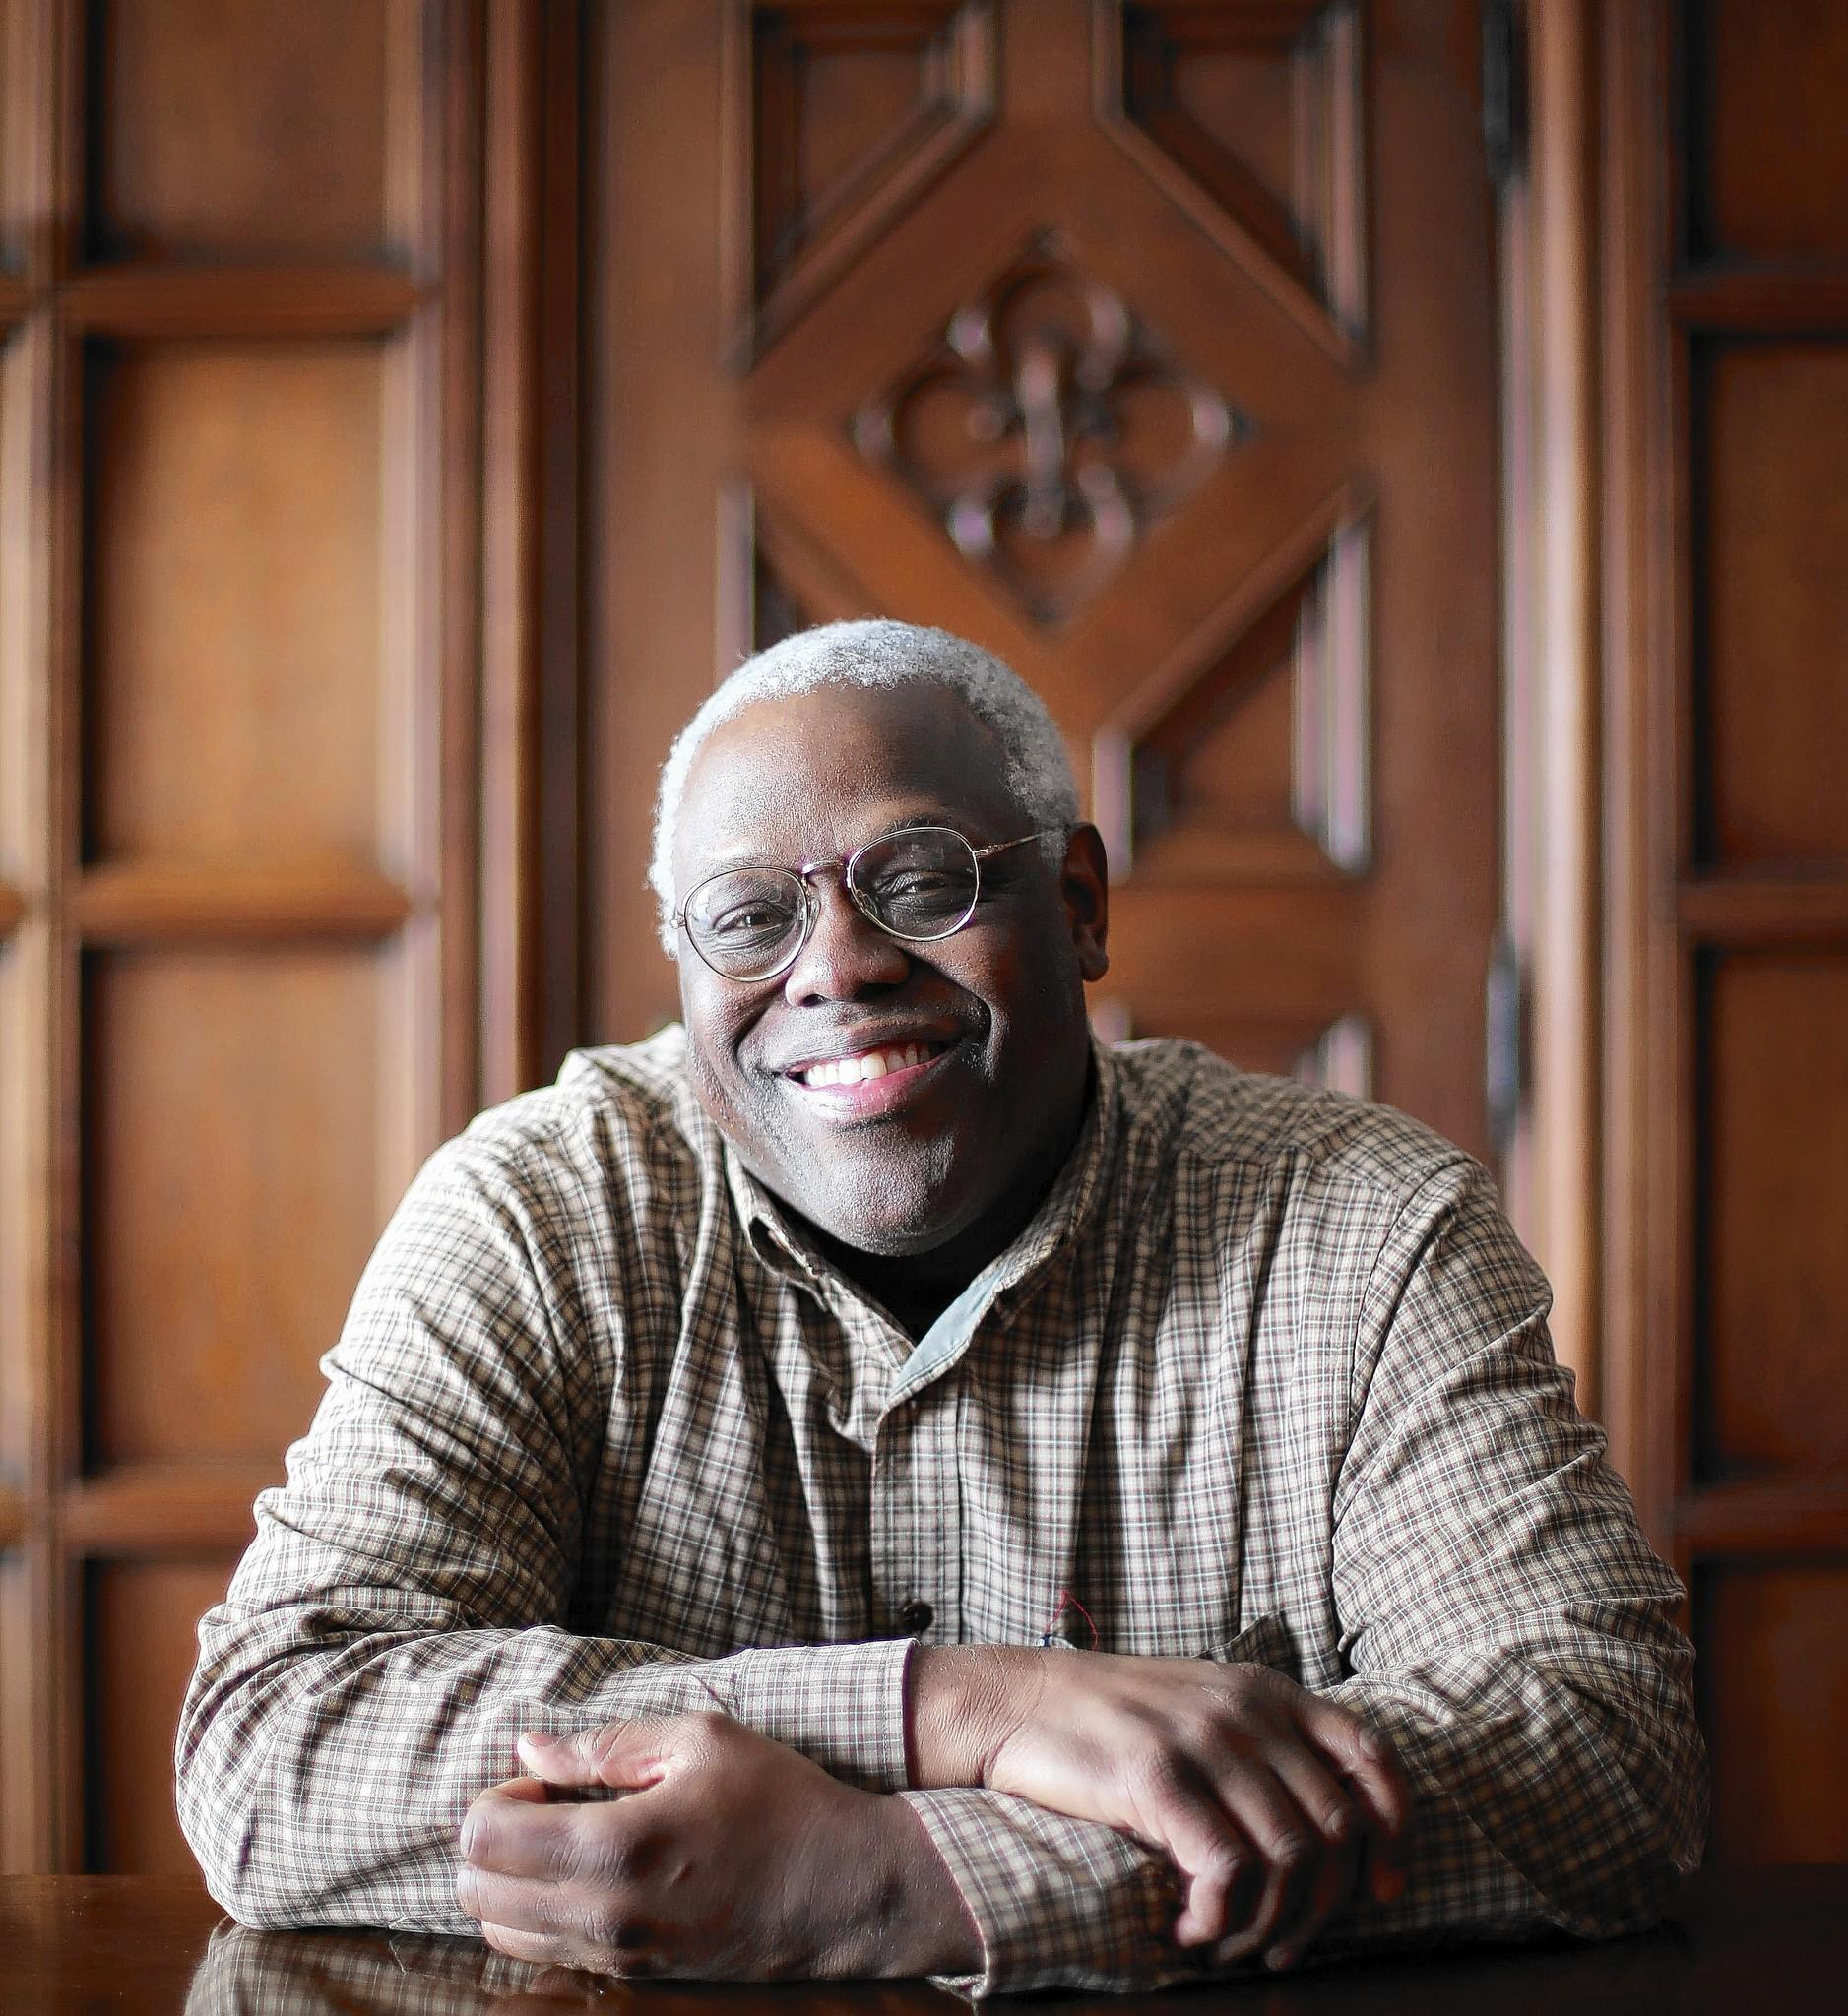 """Eric Charles May tackles morality, faith and community in his new book """"Bedrock Faith."""""""